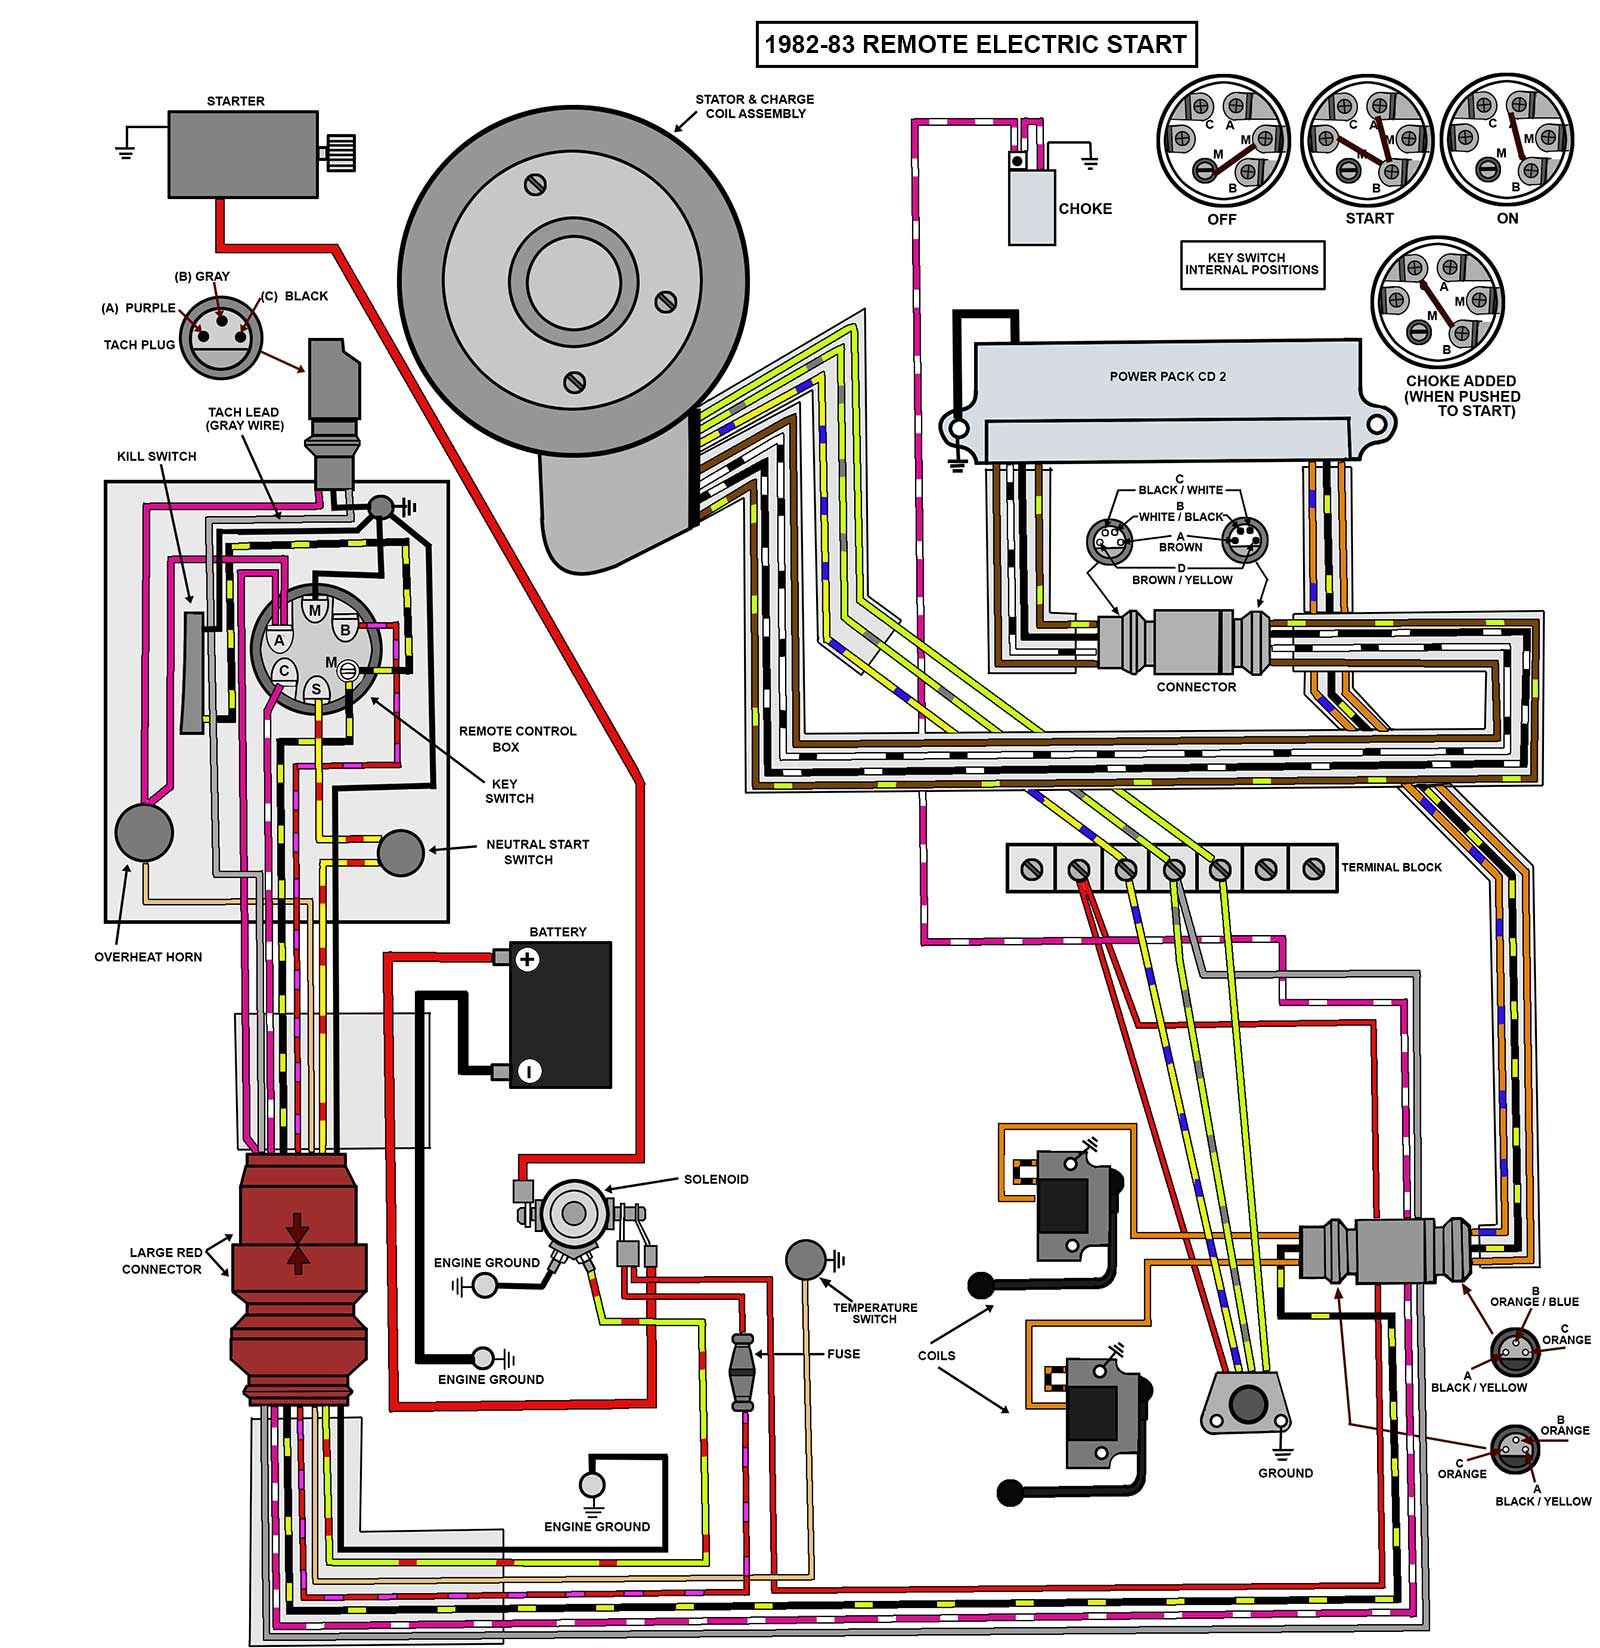 12 volt electric motor wiring diagram with Hookup Diagrams Wirirng Steering Etc on 2products details also 12 Volt Toggle Switch Wiring Diagrams besides Basic Motor Control Wiring Diagram additionally Change Direction Of 12v Dc Motor Rotation Using Relay moreover Eagle Drawing Easy.